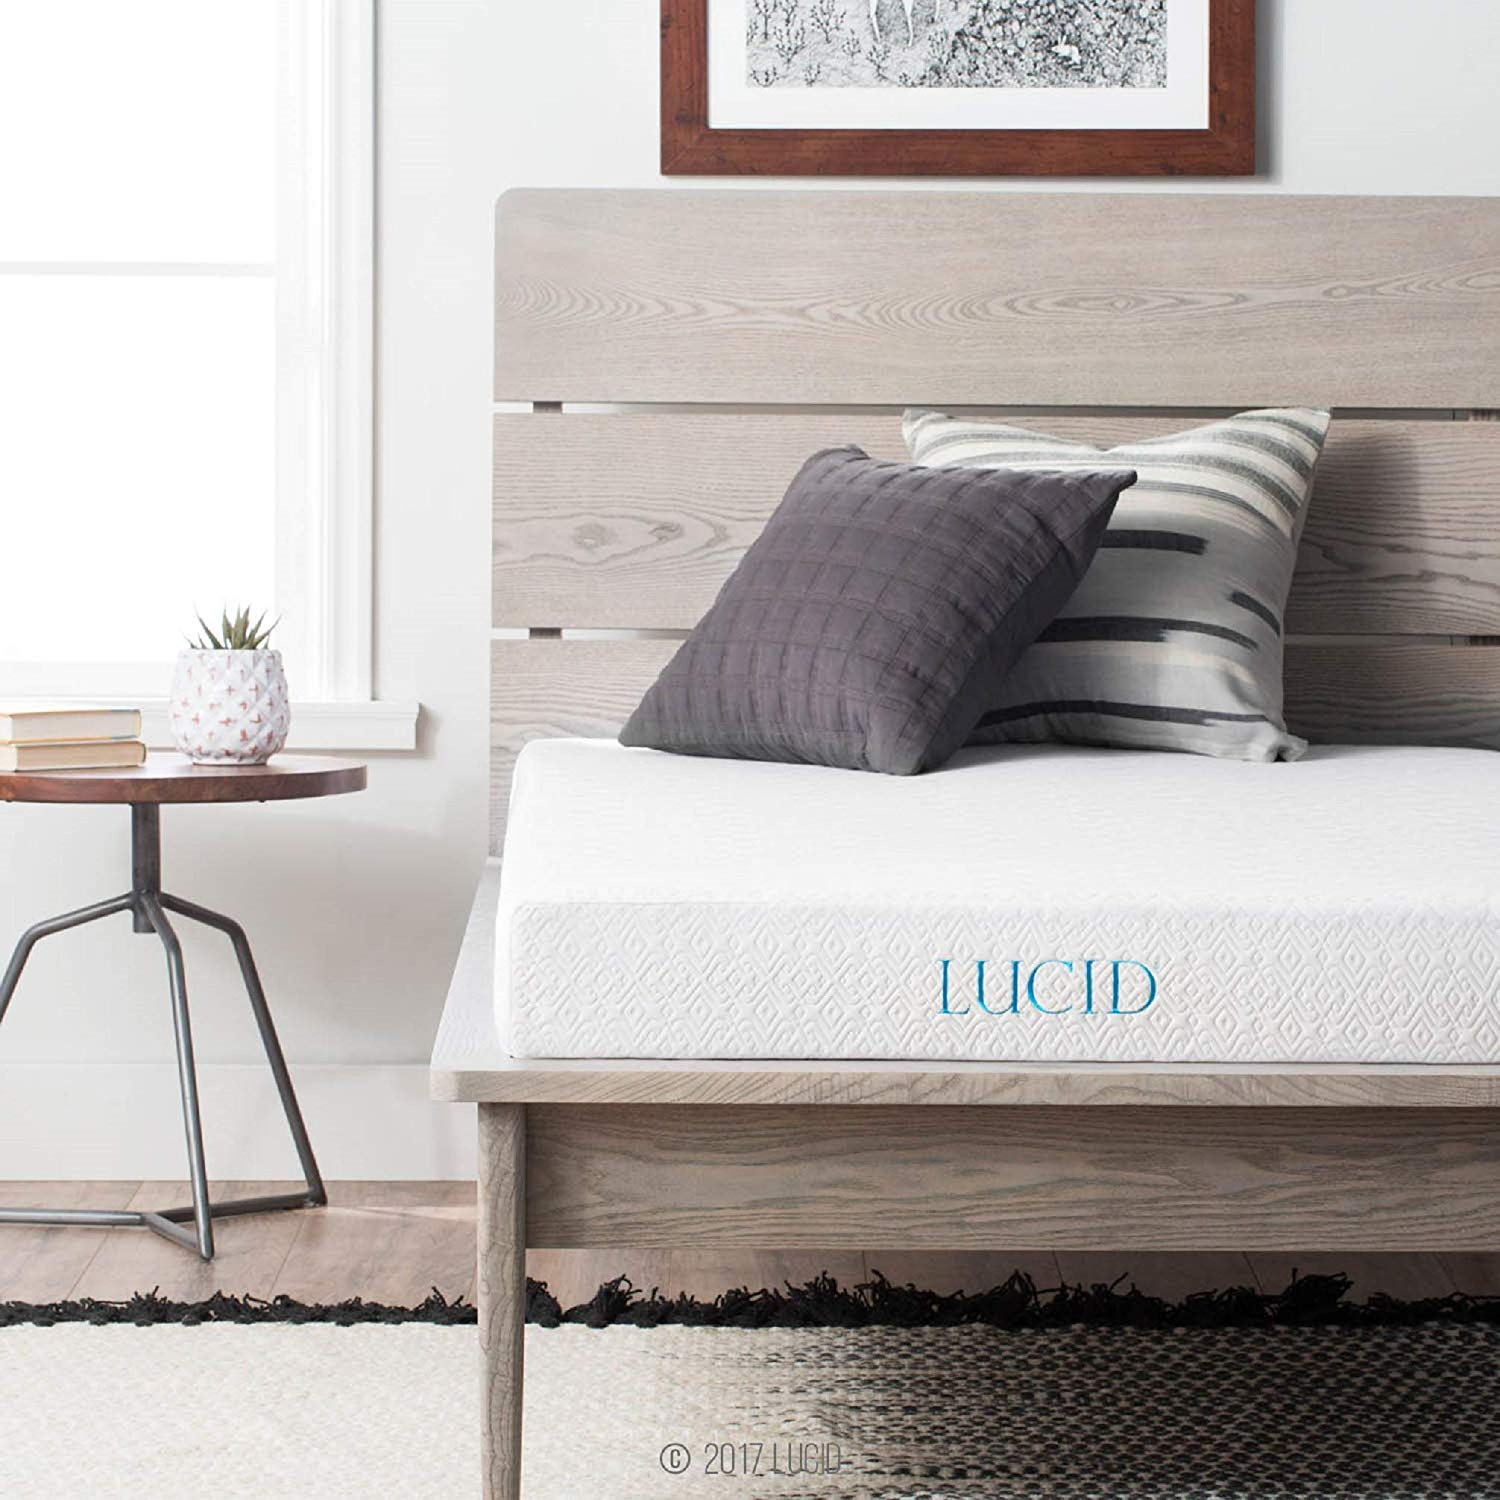 LUCID Thin Mattress Review by www.snoremagazine.com